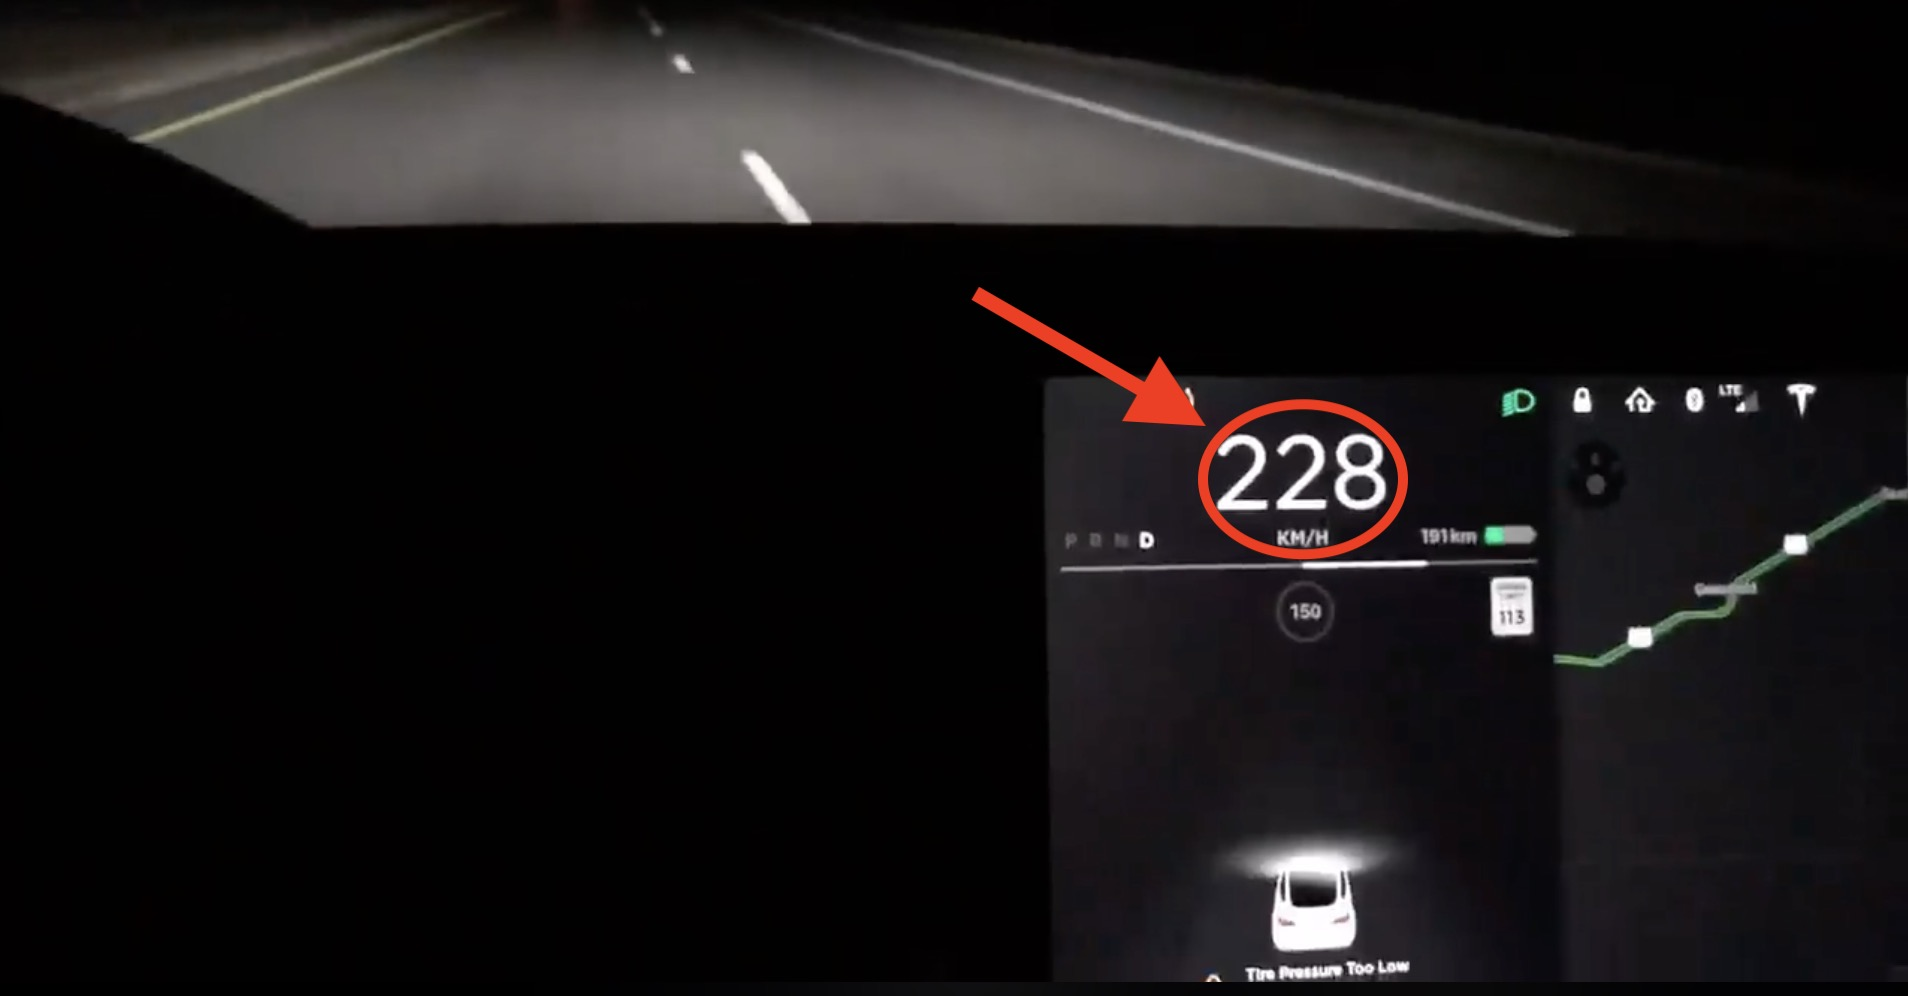 BMW Motorcycles Prices >> Tesla Model 3 owner shows top speed of 141 mph and other features in cross-country trip - Electrek